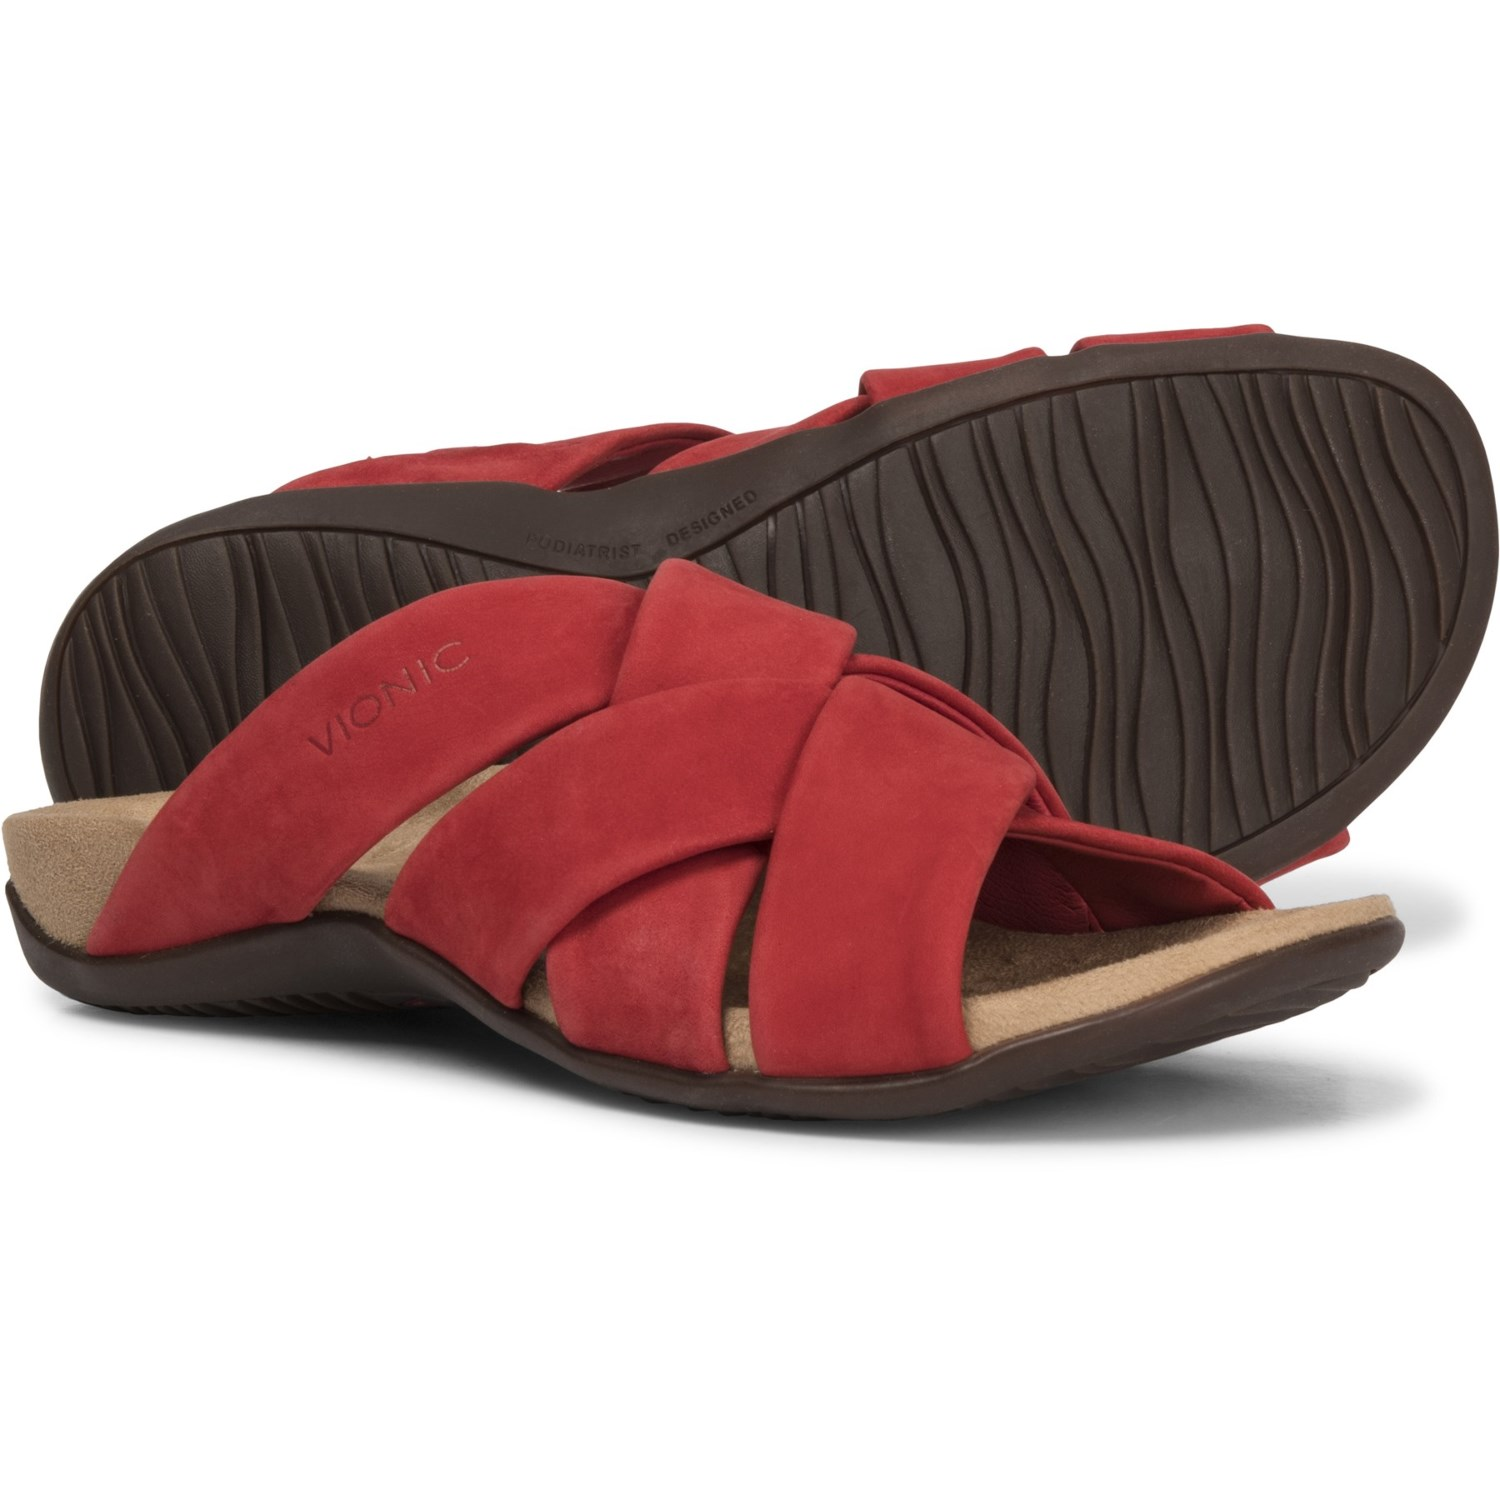 6f2a6220bc31 Vionic Orthaheel Technology Juno Slide Sandals (For Women) in Cherry ...